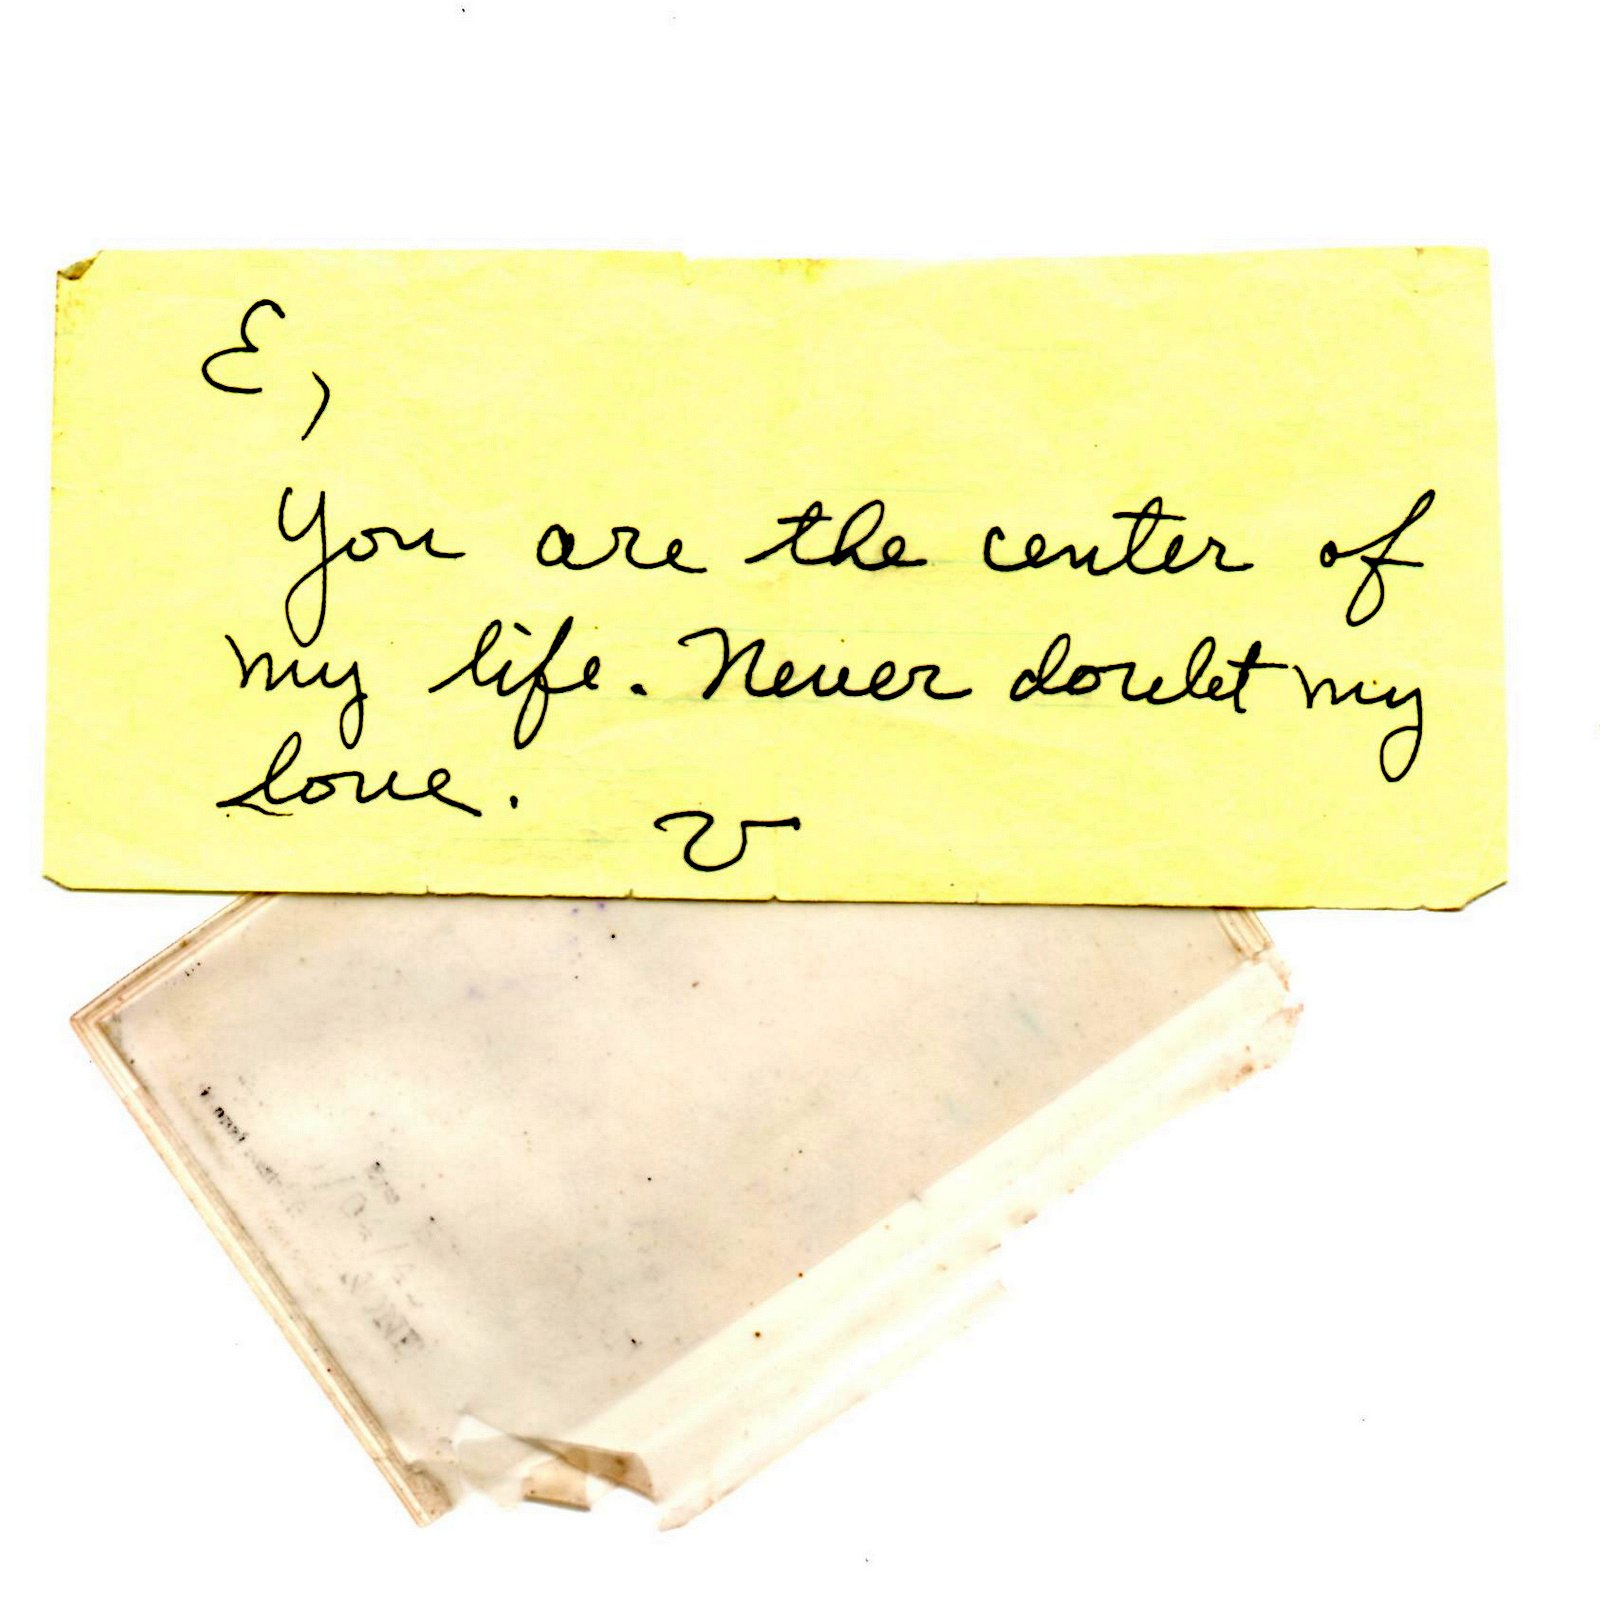 A Love Note from Beyond - Elaine Mansfield